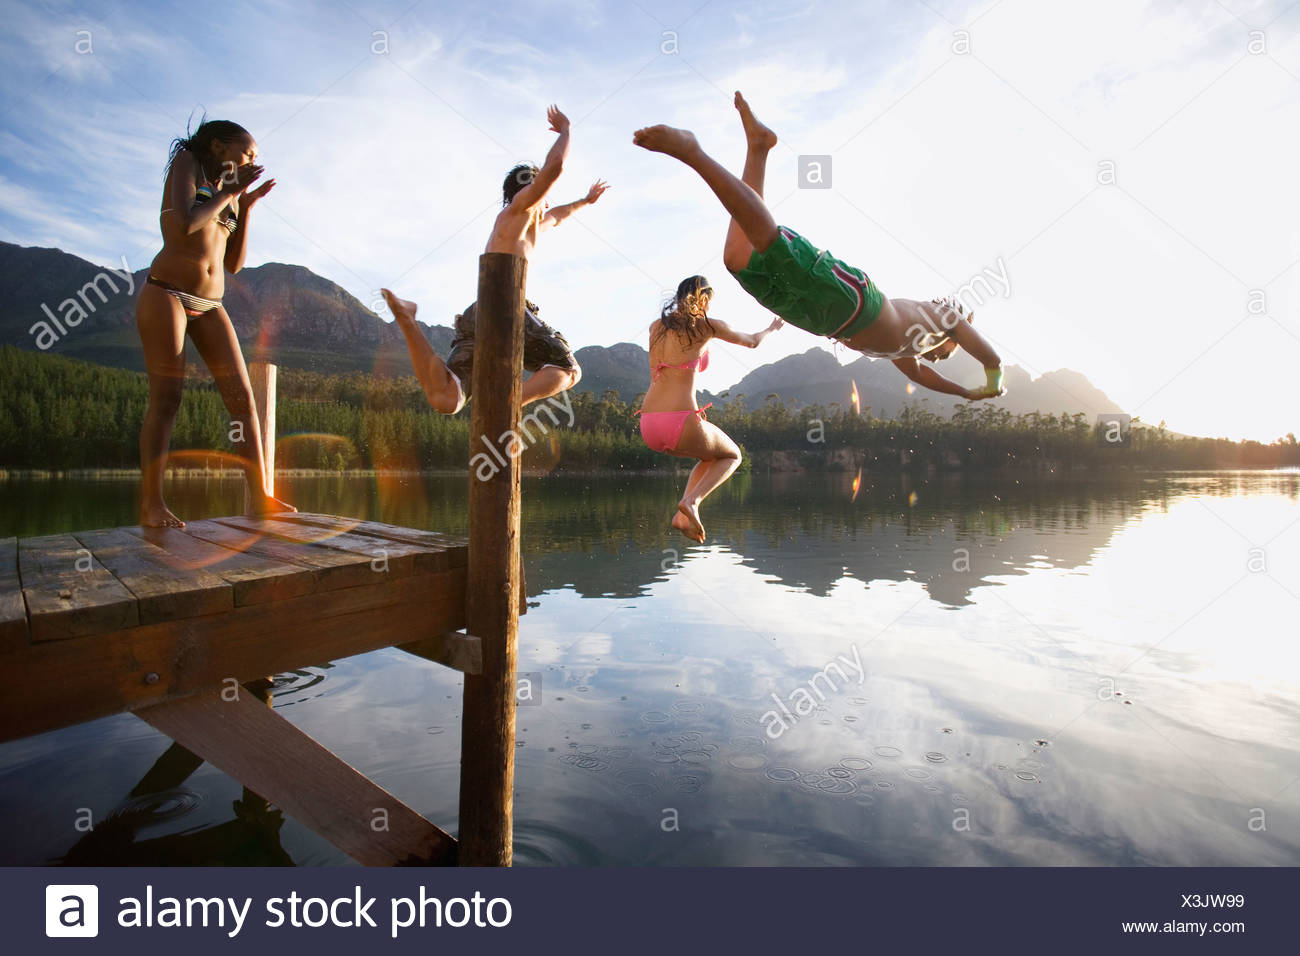 Four young adults diving from jetty into lake at sunset side view lens flare - Stock Image